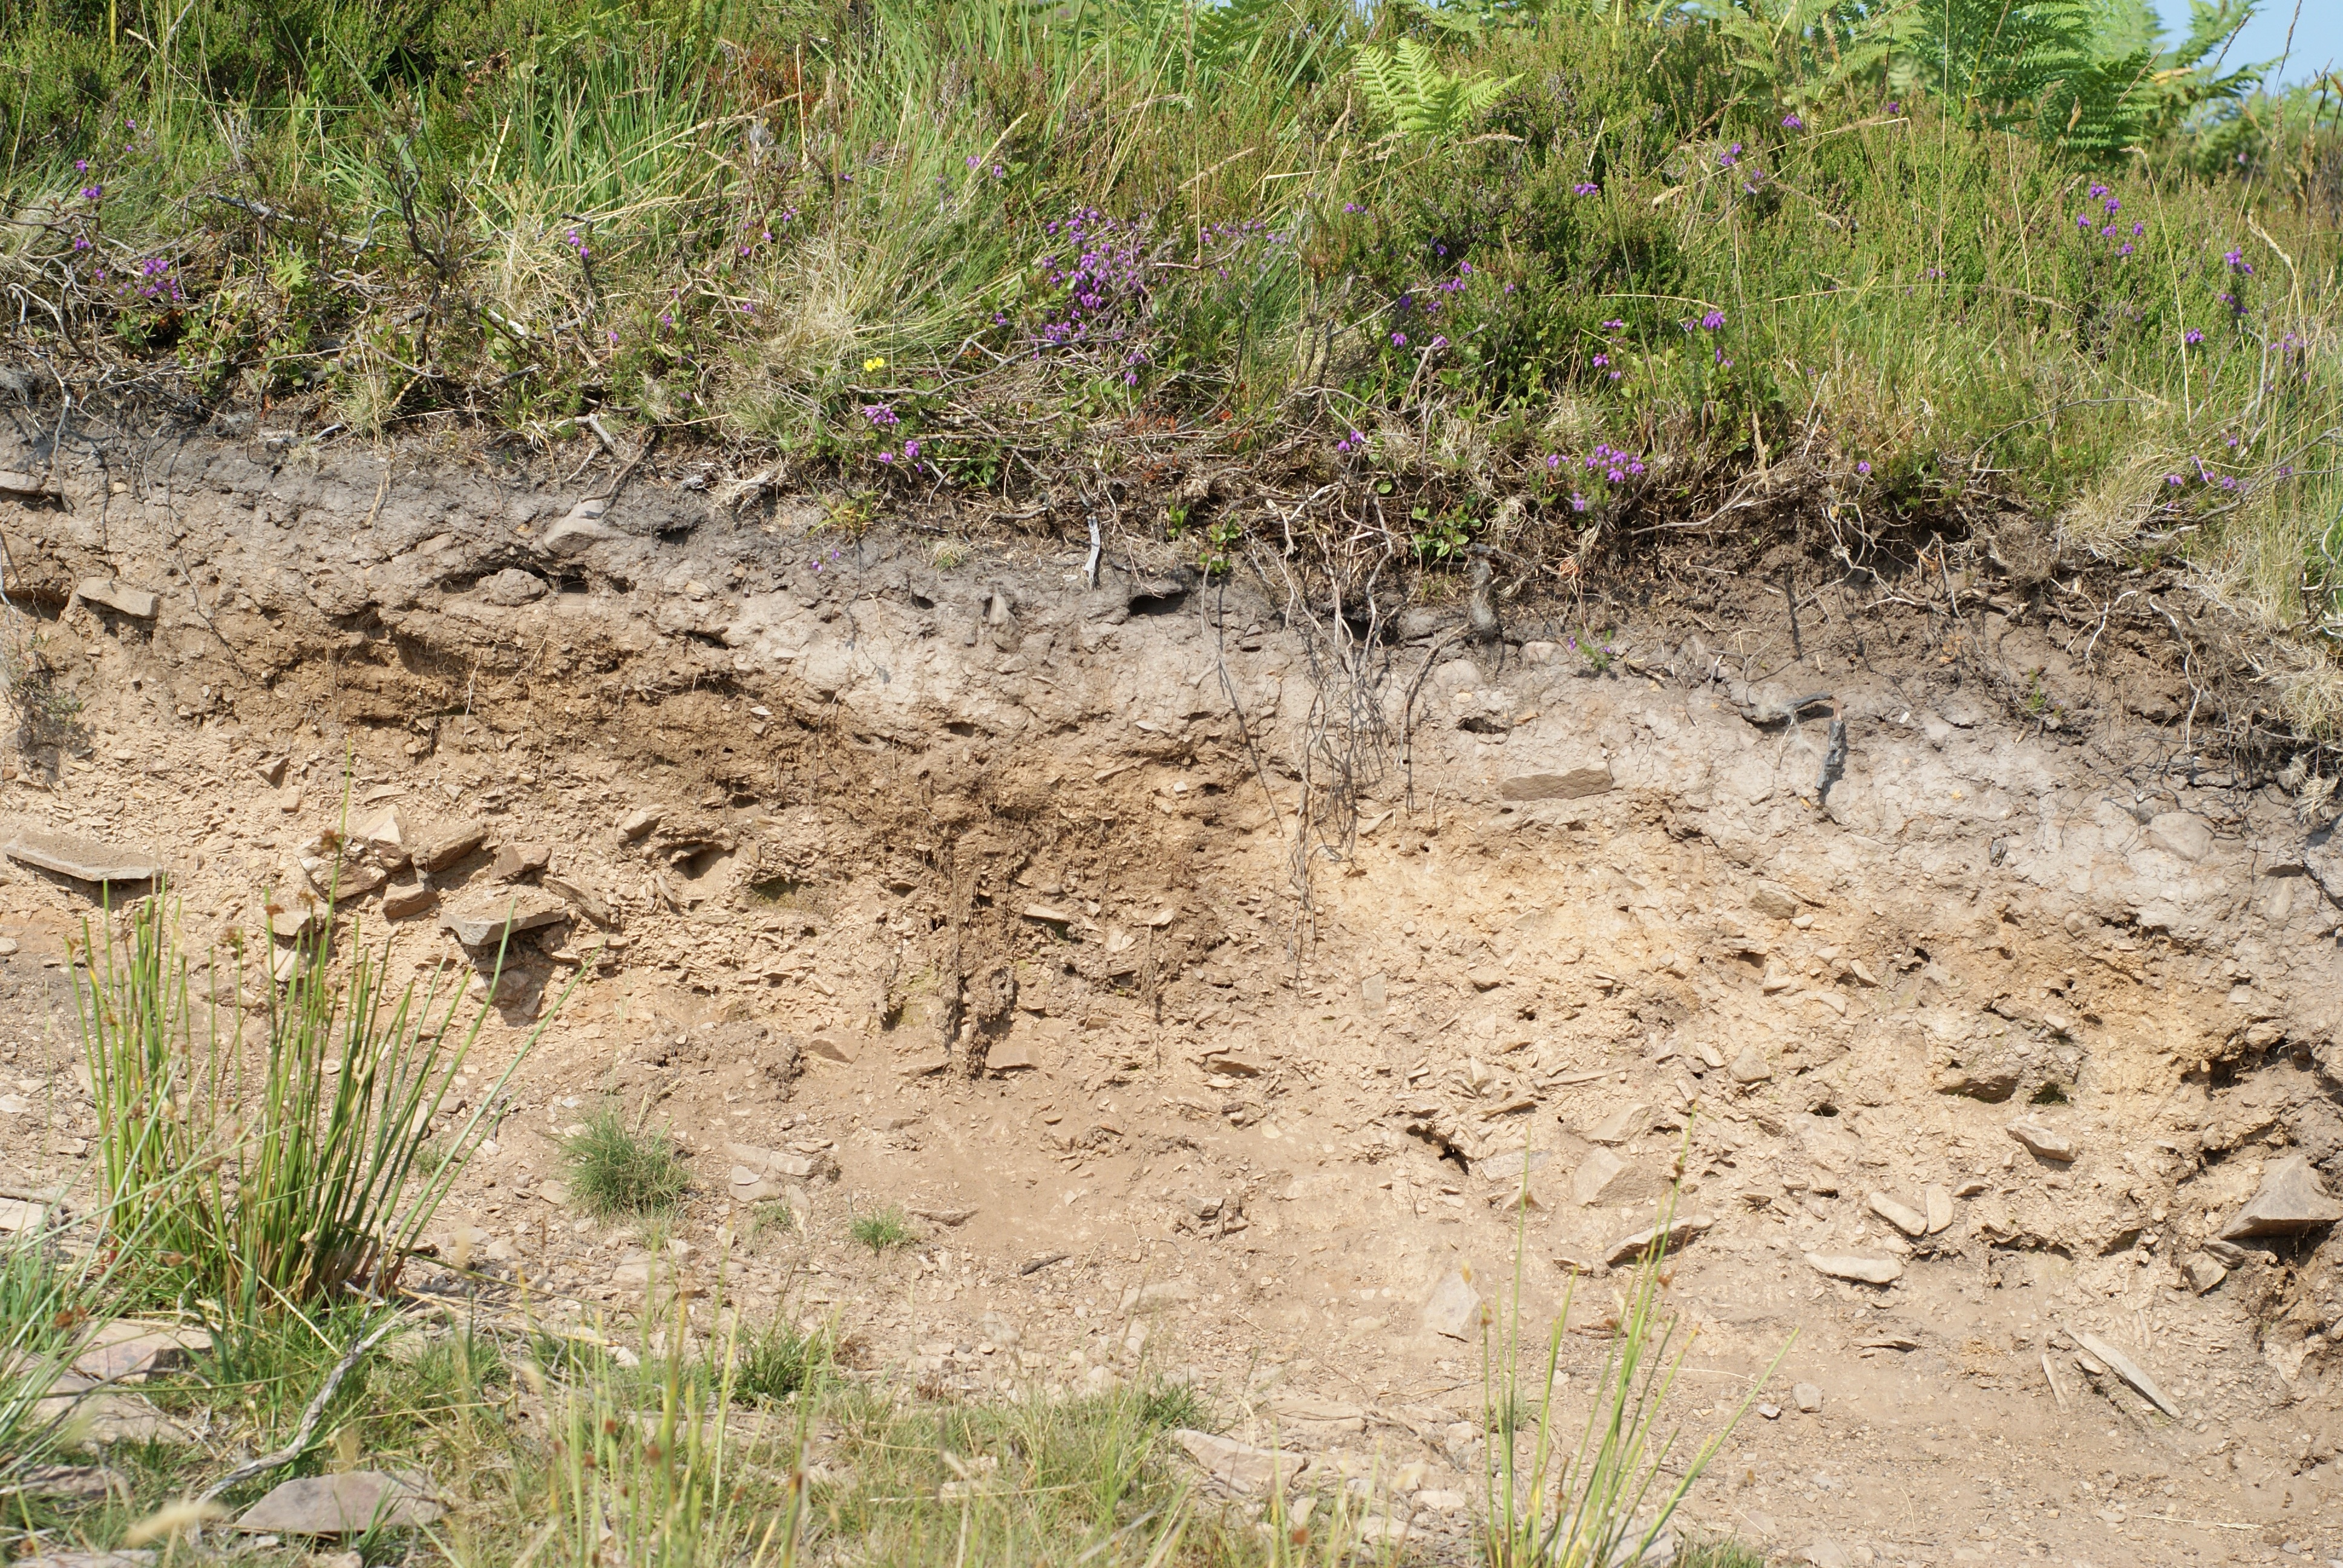 Manchester ecologist s warning on earth s imperiled soils for Earth or soil